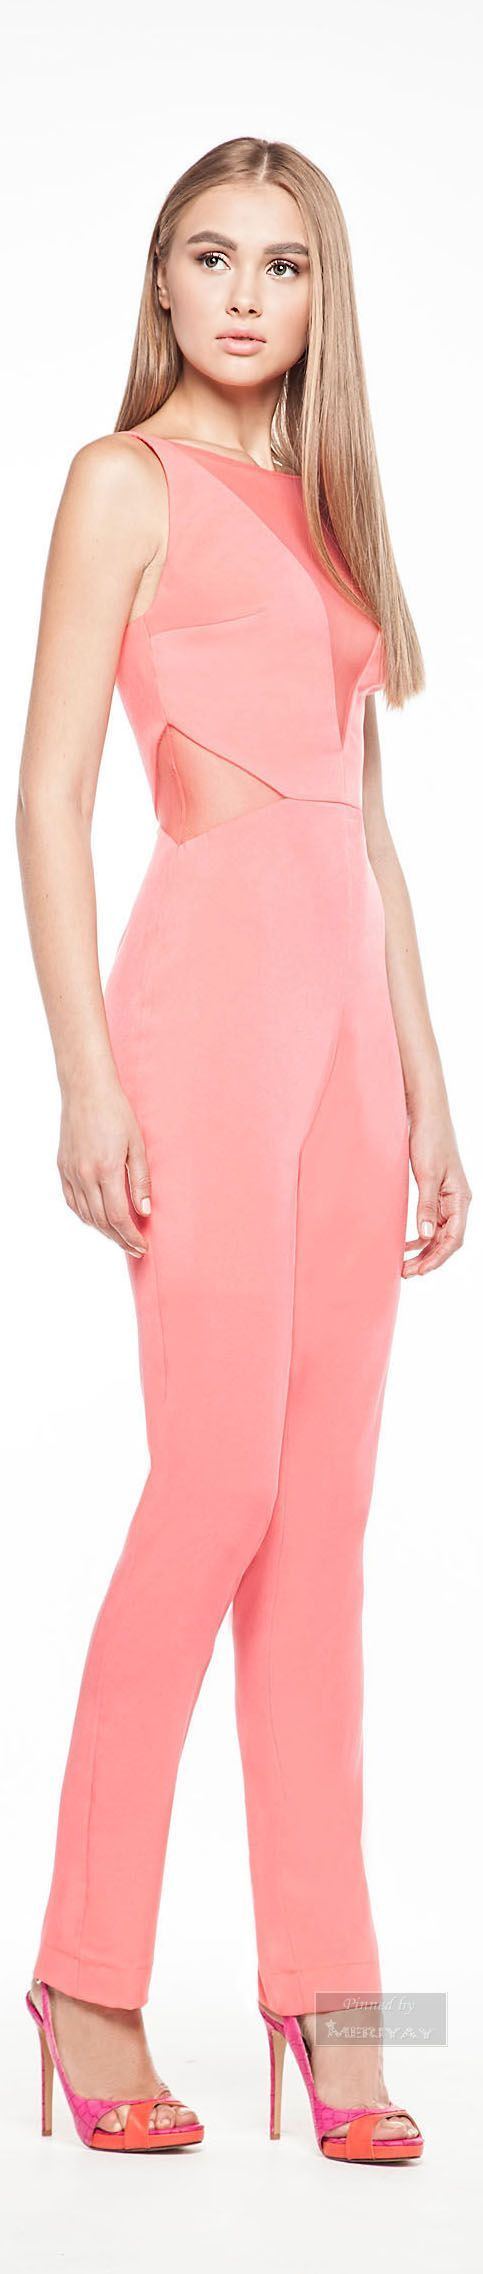 "pink jumpsuit @roressclothes closet ideas women fashion outfit clothing style Georges Hobeika ""GH"", SS 2015:"